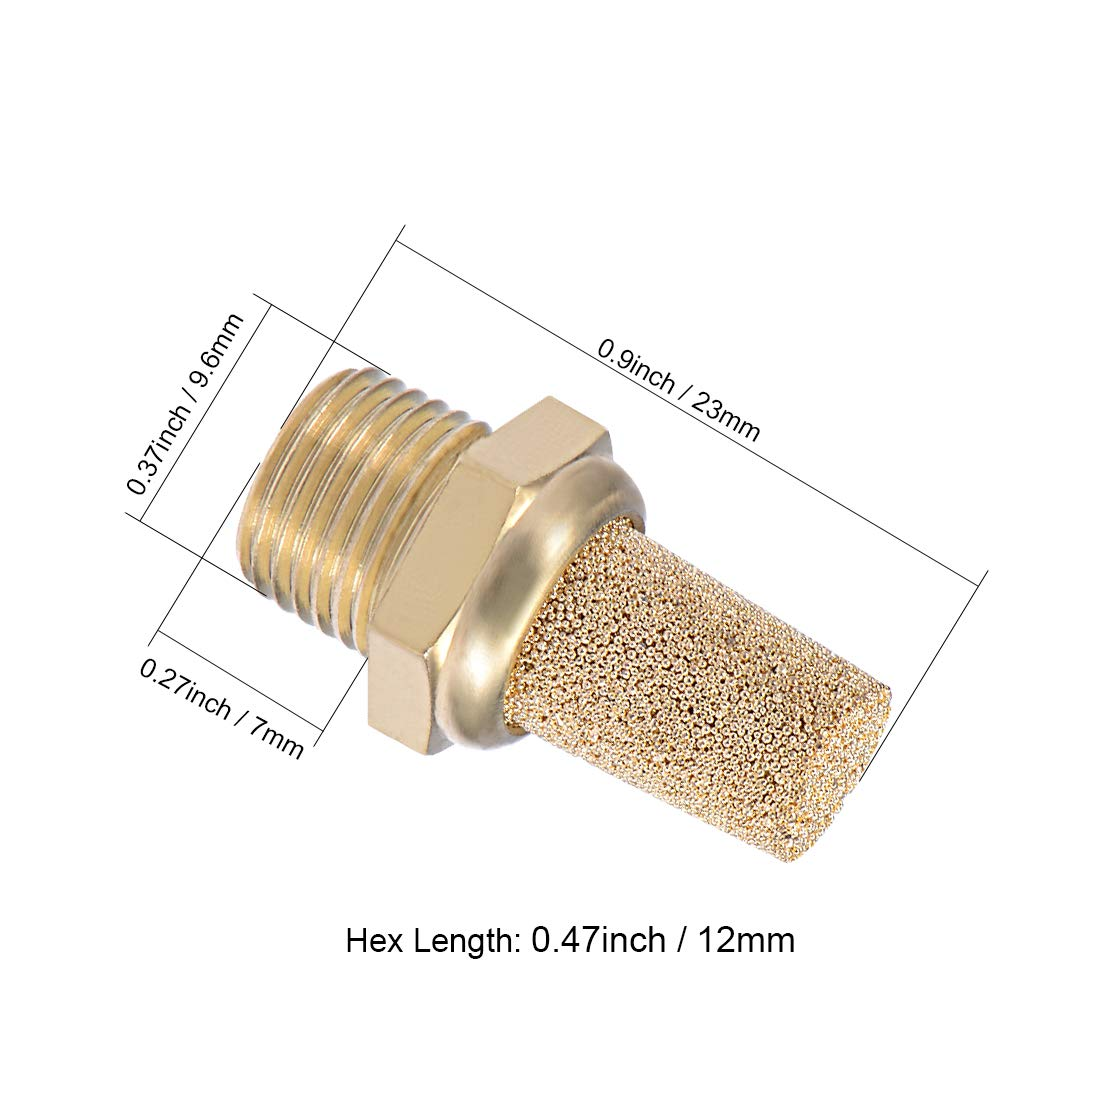 uxcell 3//8 PT Sintered Bronze Exhaust Muffler with Brass Body Protruding 4pcs